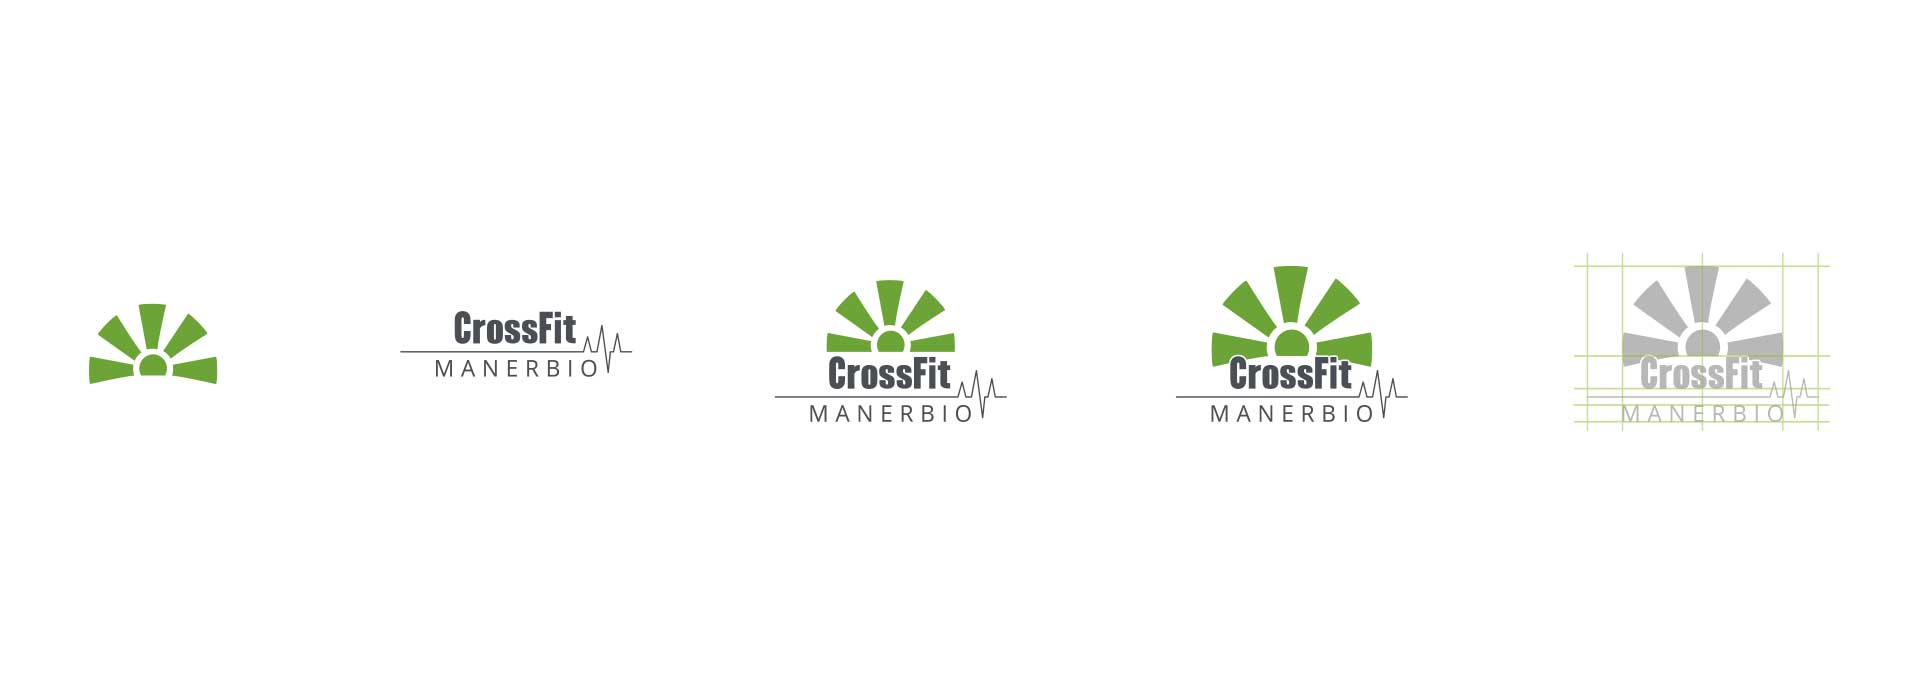 crossfit logo versions